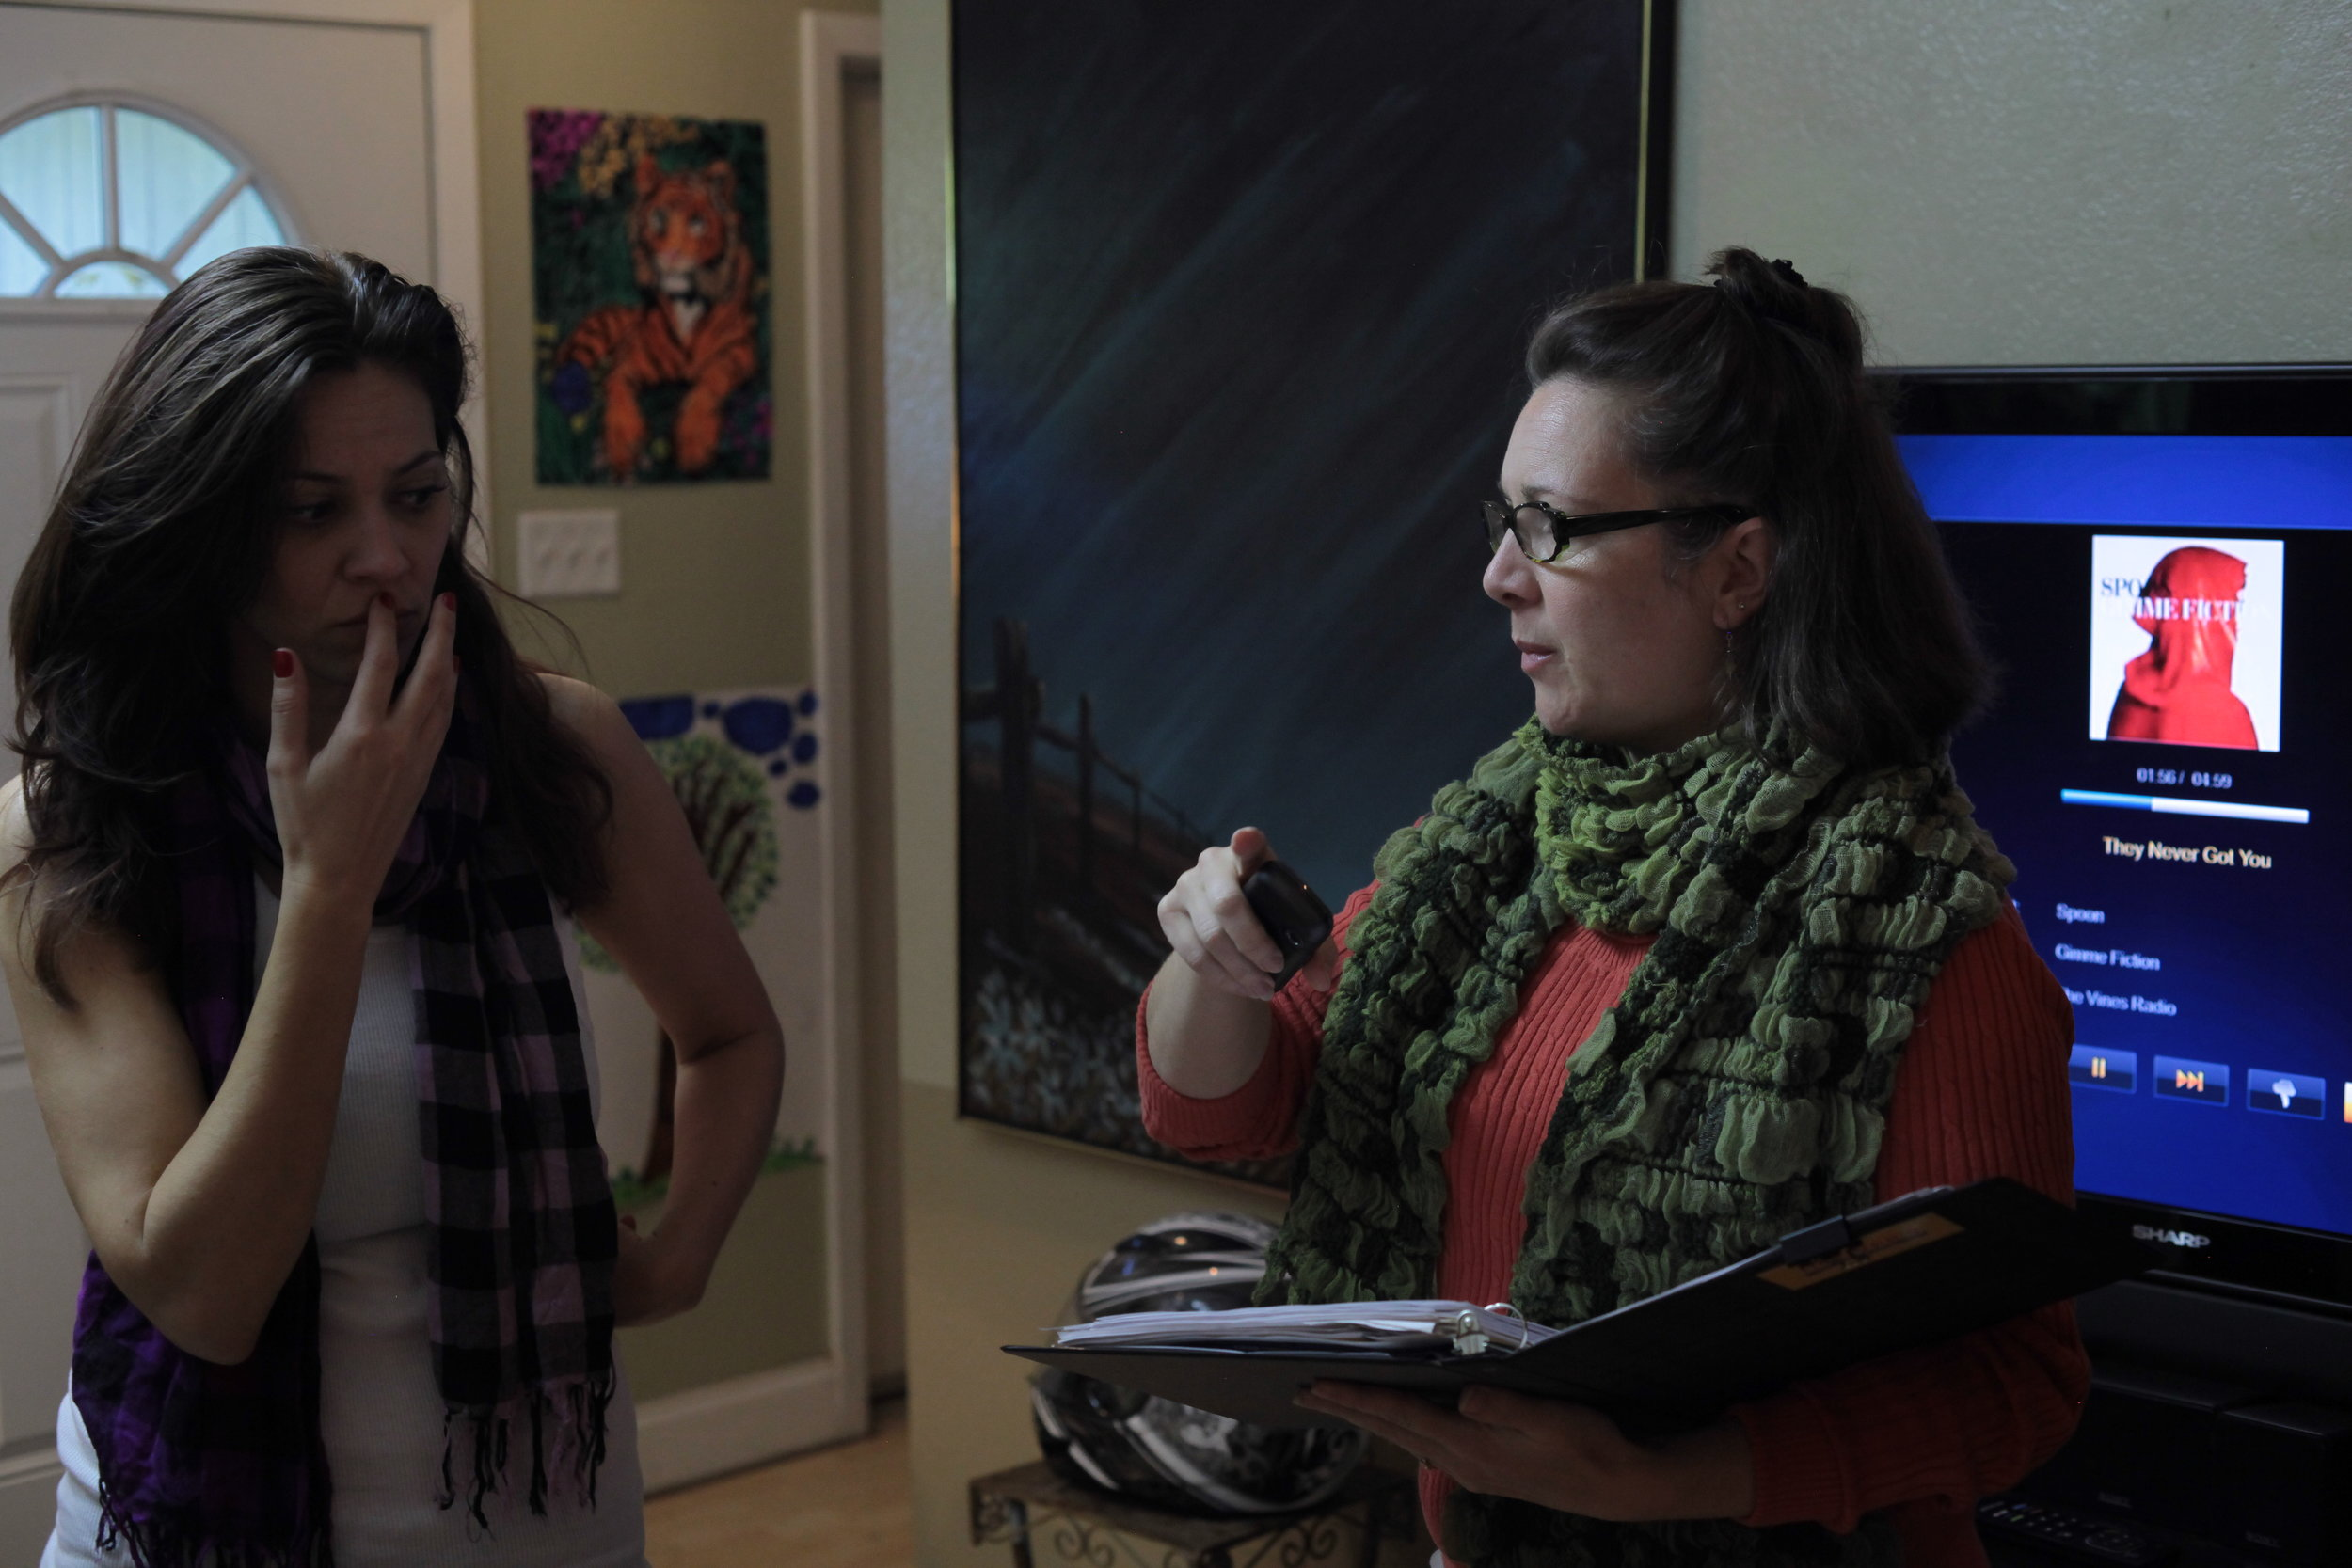 Lorie Marsh (right) conferring on set with filmmaker, Jentri Quinn.